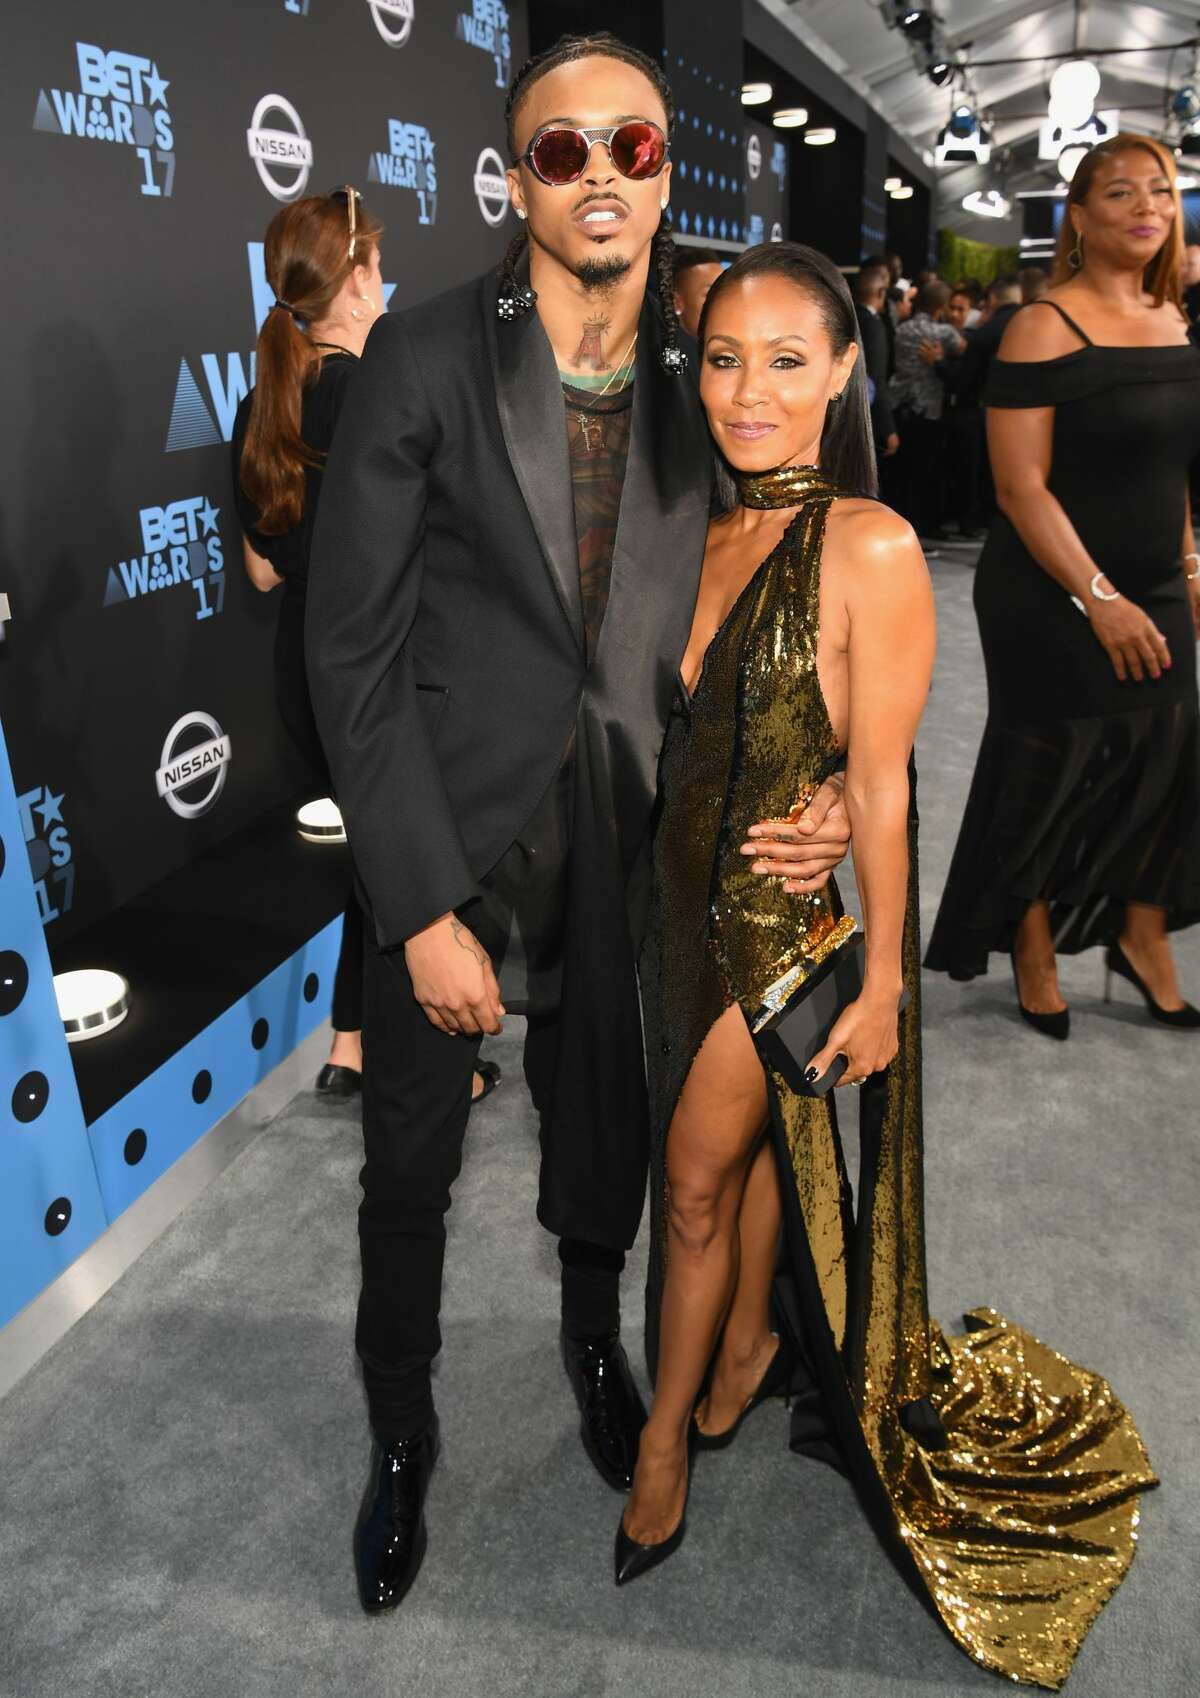 In this June 2017 photo, August Alsina (L) and Jada Pinkett Smith pose for a photo at the 2017 BET Awards at Staples Center in Los Angeles, California.